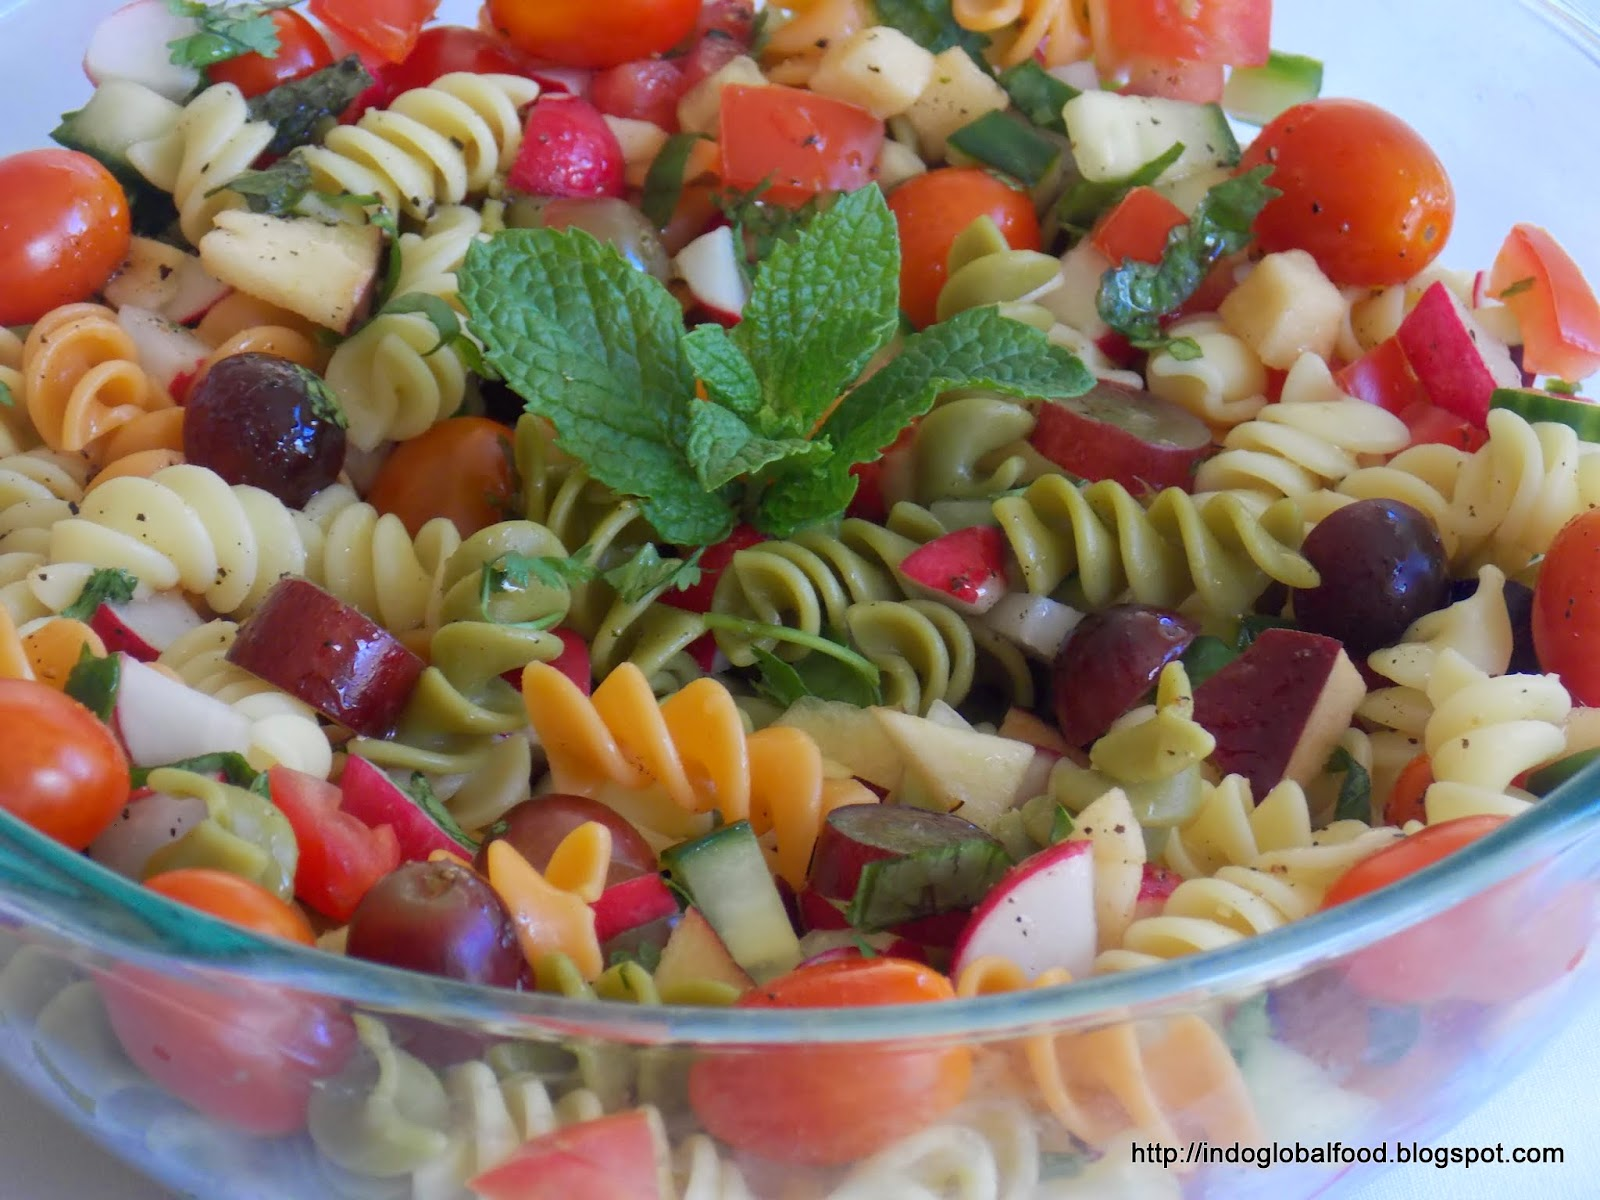 Simple cold pasta salad recipe how to make pasta salad Pasta salad recipe cold